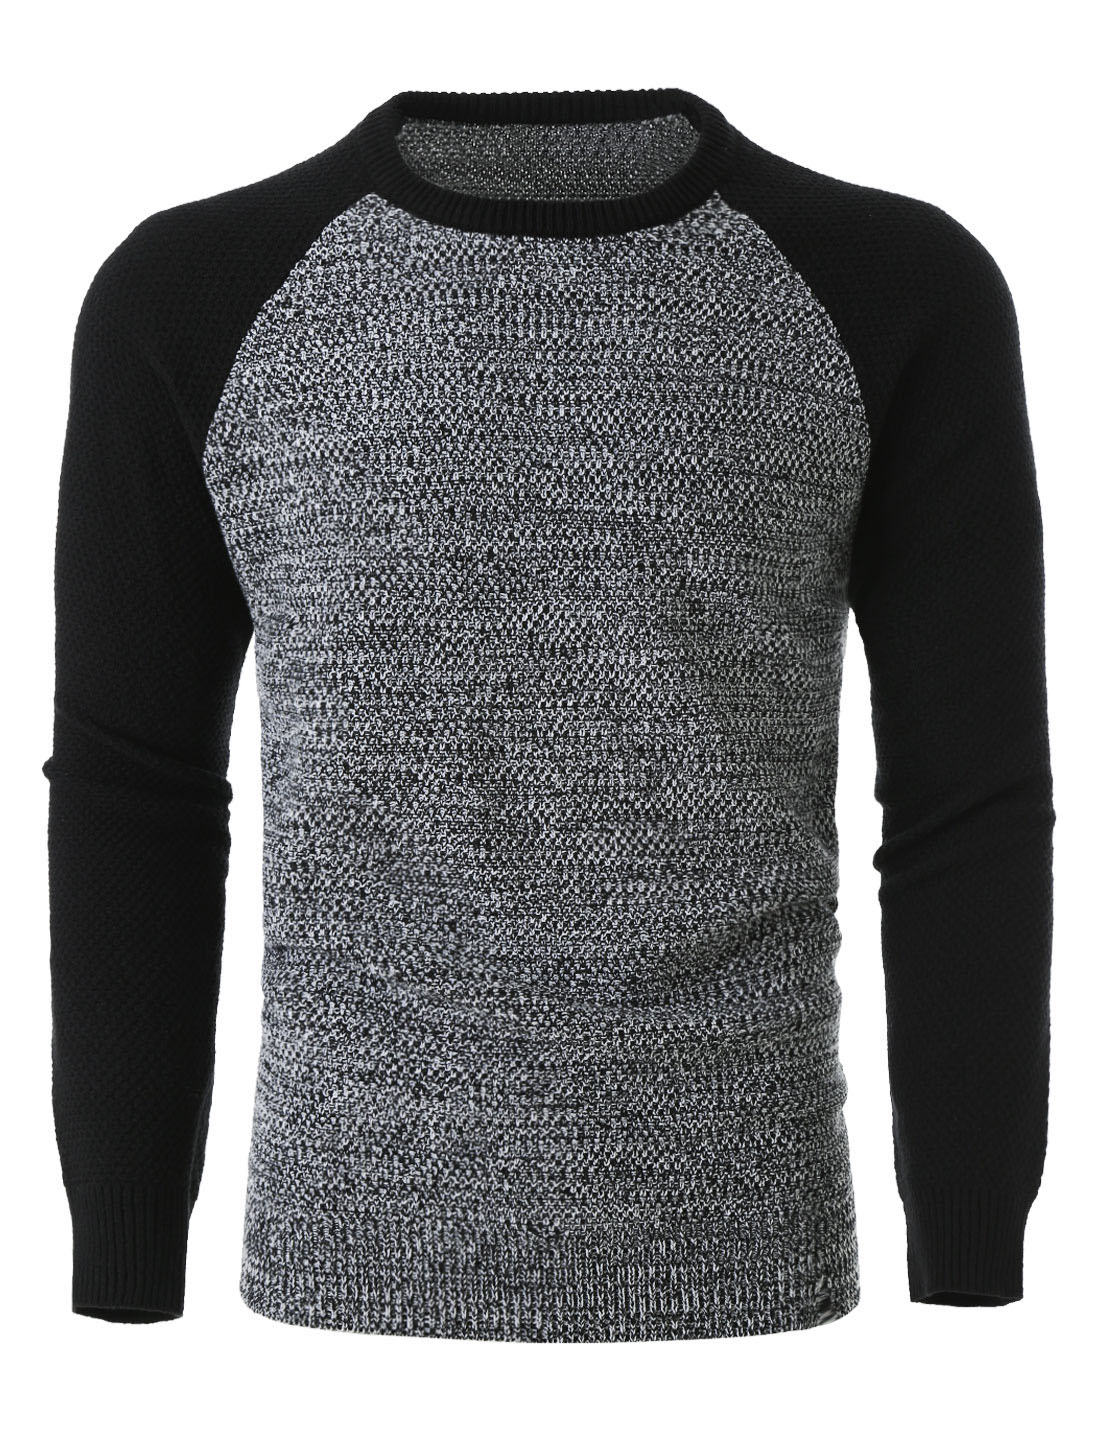 Men Lightweight Color Block Long Sleeve Crewneck Pullover Knit Sweater Grey L